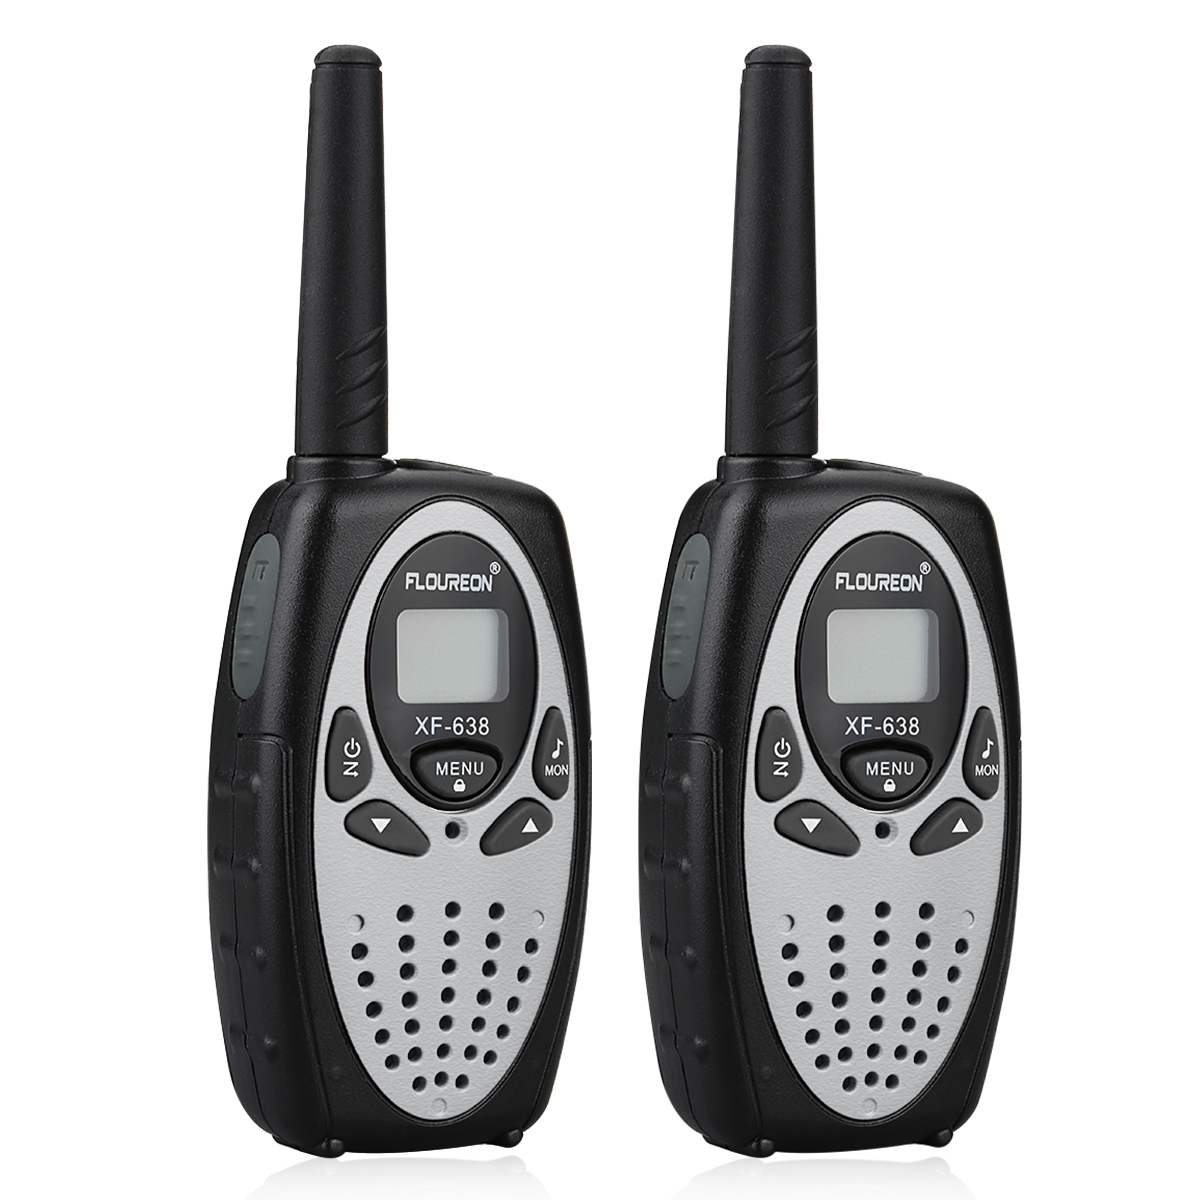 2er 8 kanal hand funkger t walkie talkies set pmr uhf 3km 5km reichweite telefon ebay. Black Bedroom Furniture Sets. Home Design Ideas